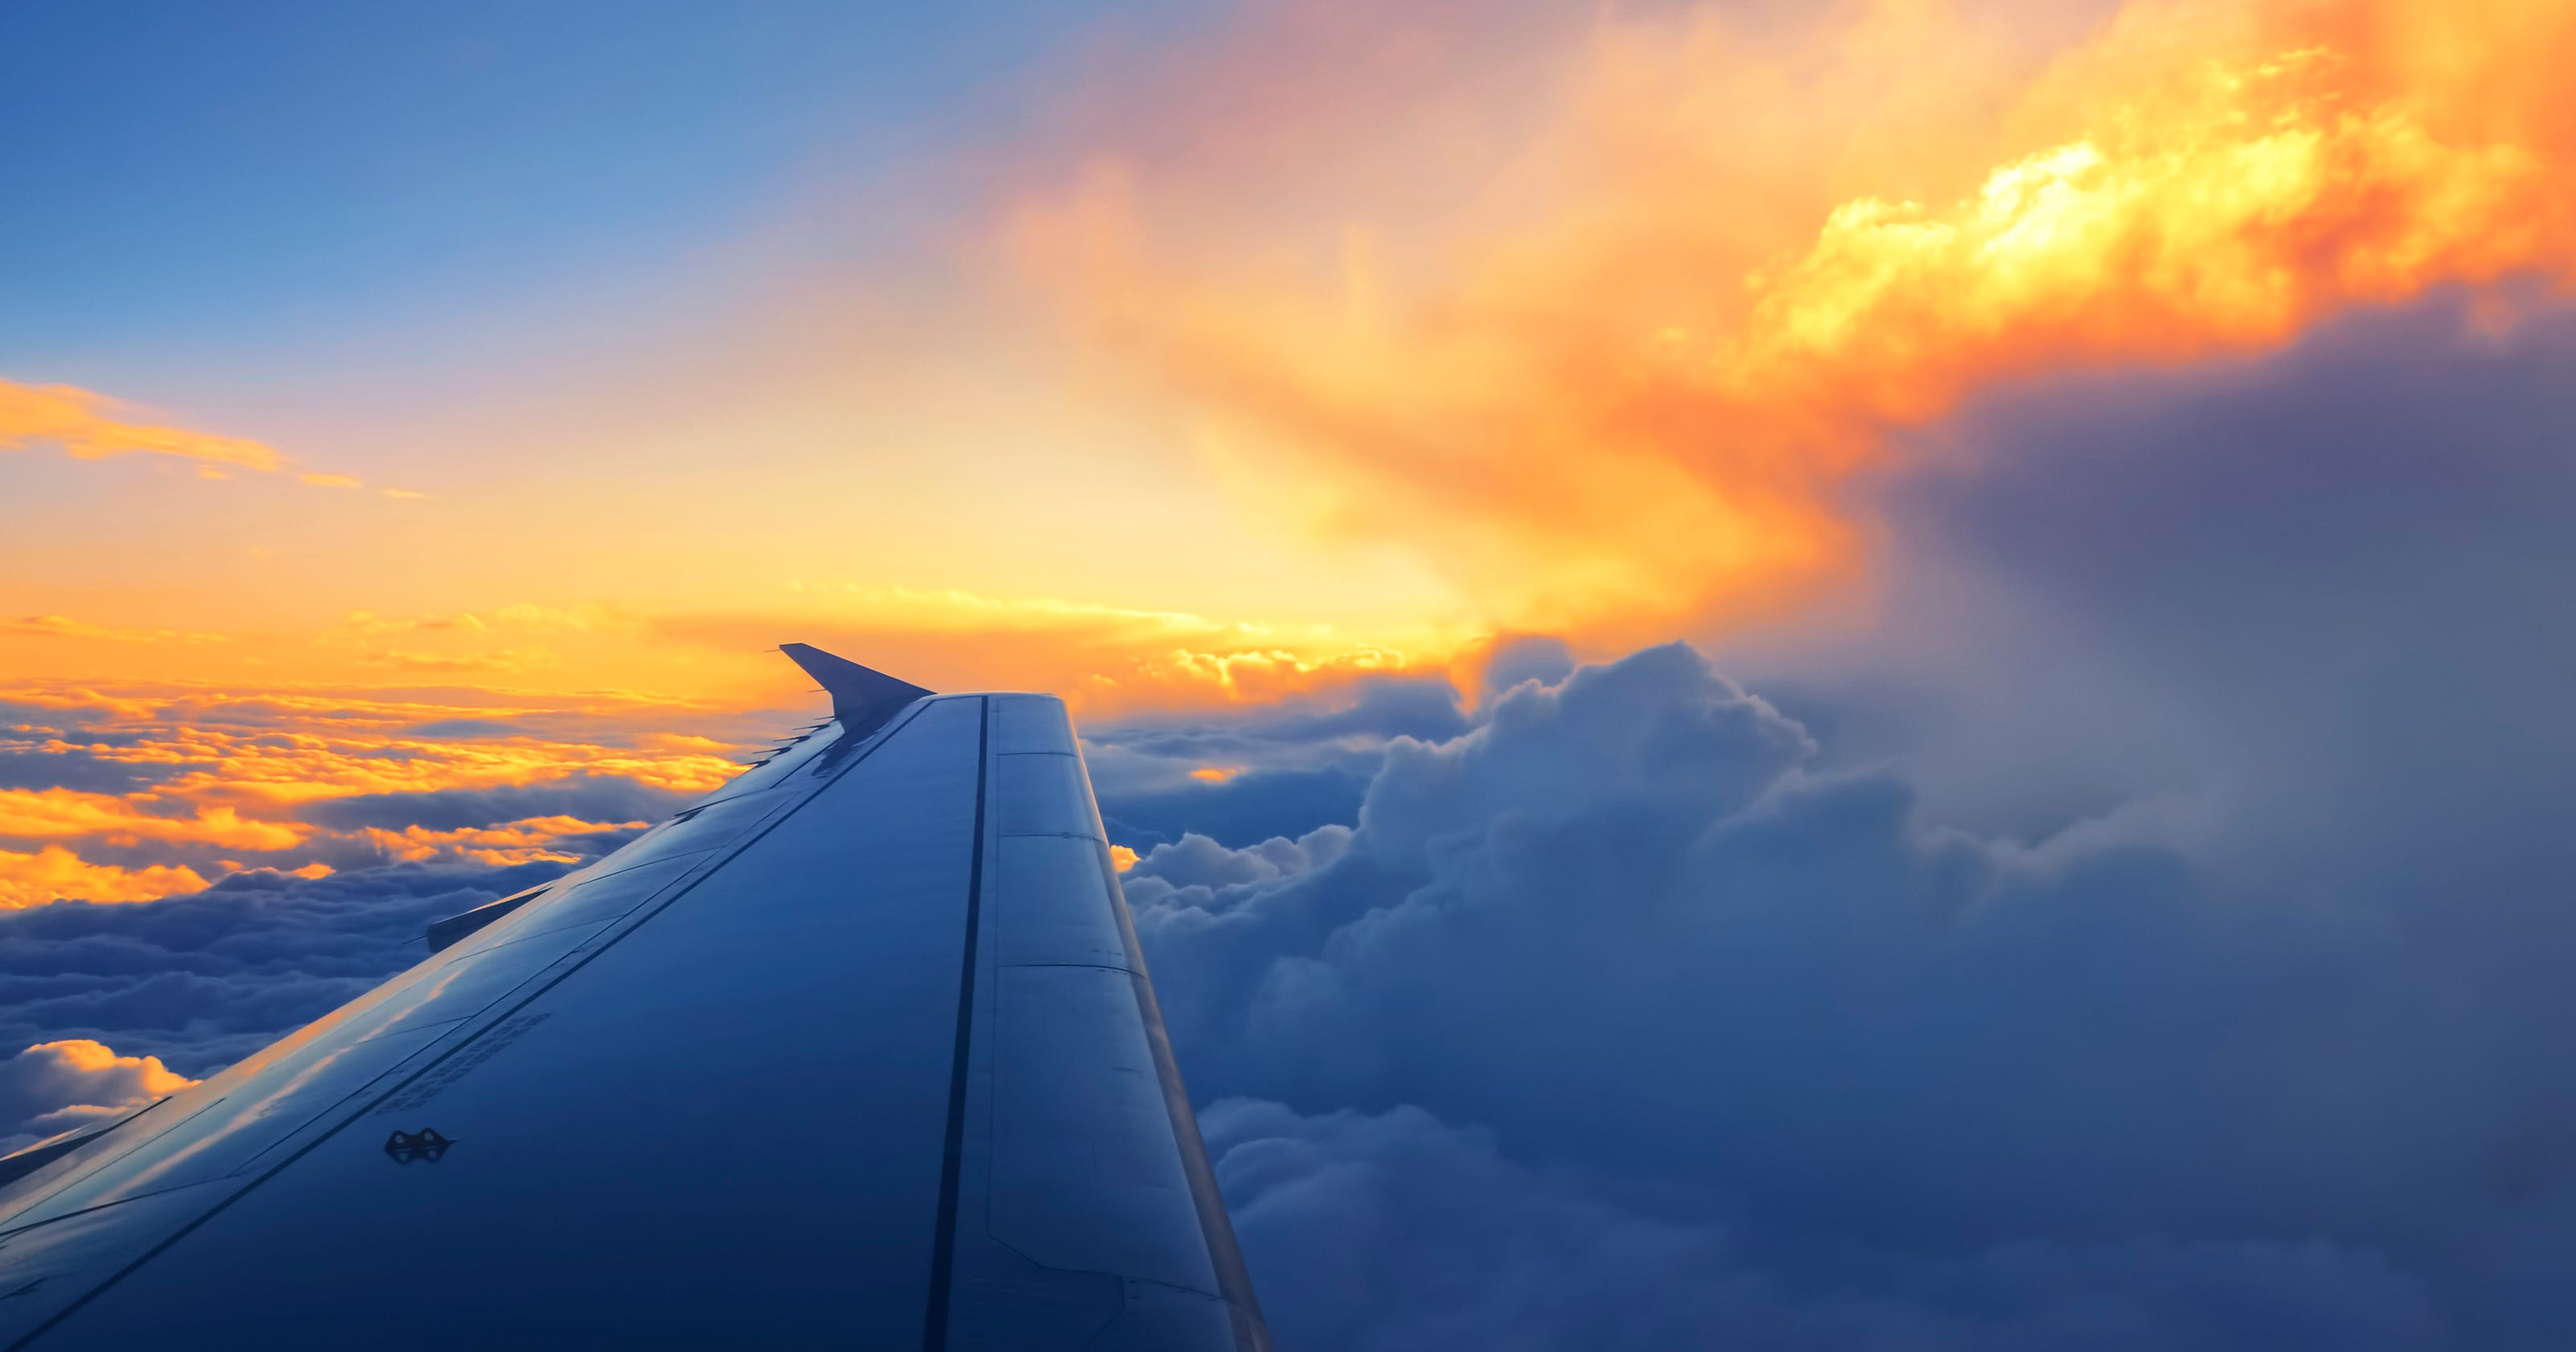 Turbulence: Is it worse at certain times of year?